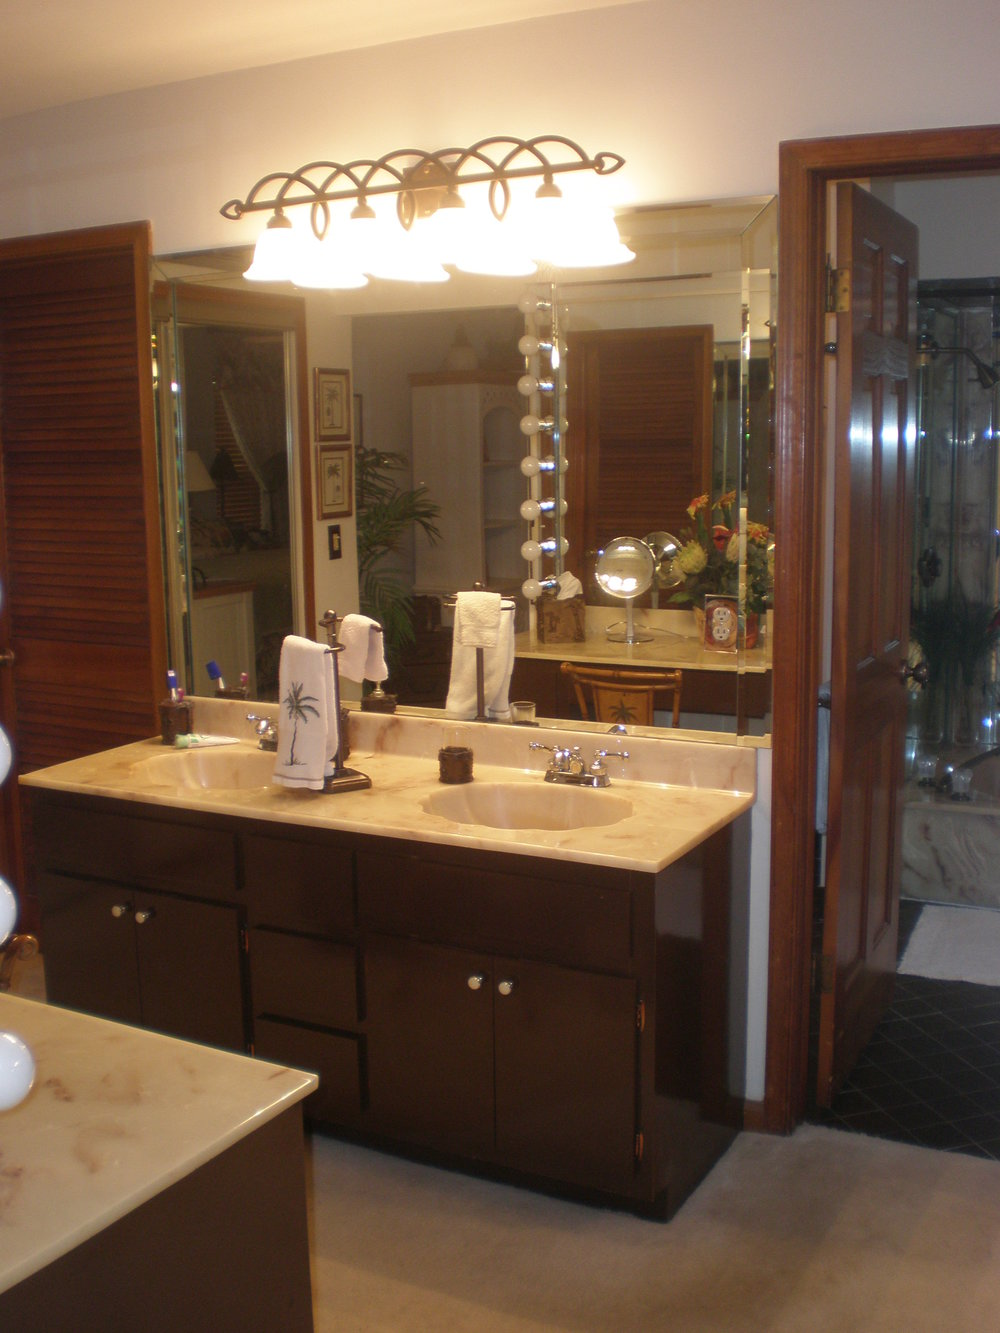 Interior design and home remodeling in the Oaks Country Club Boca Raton, 33496 Palm Beach County